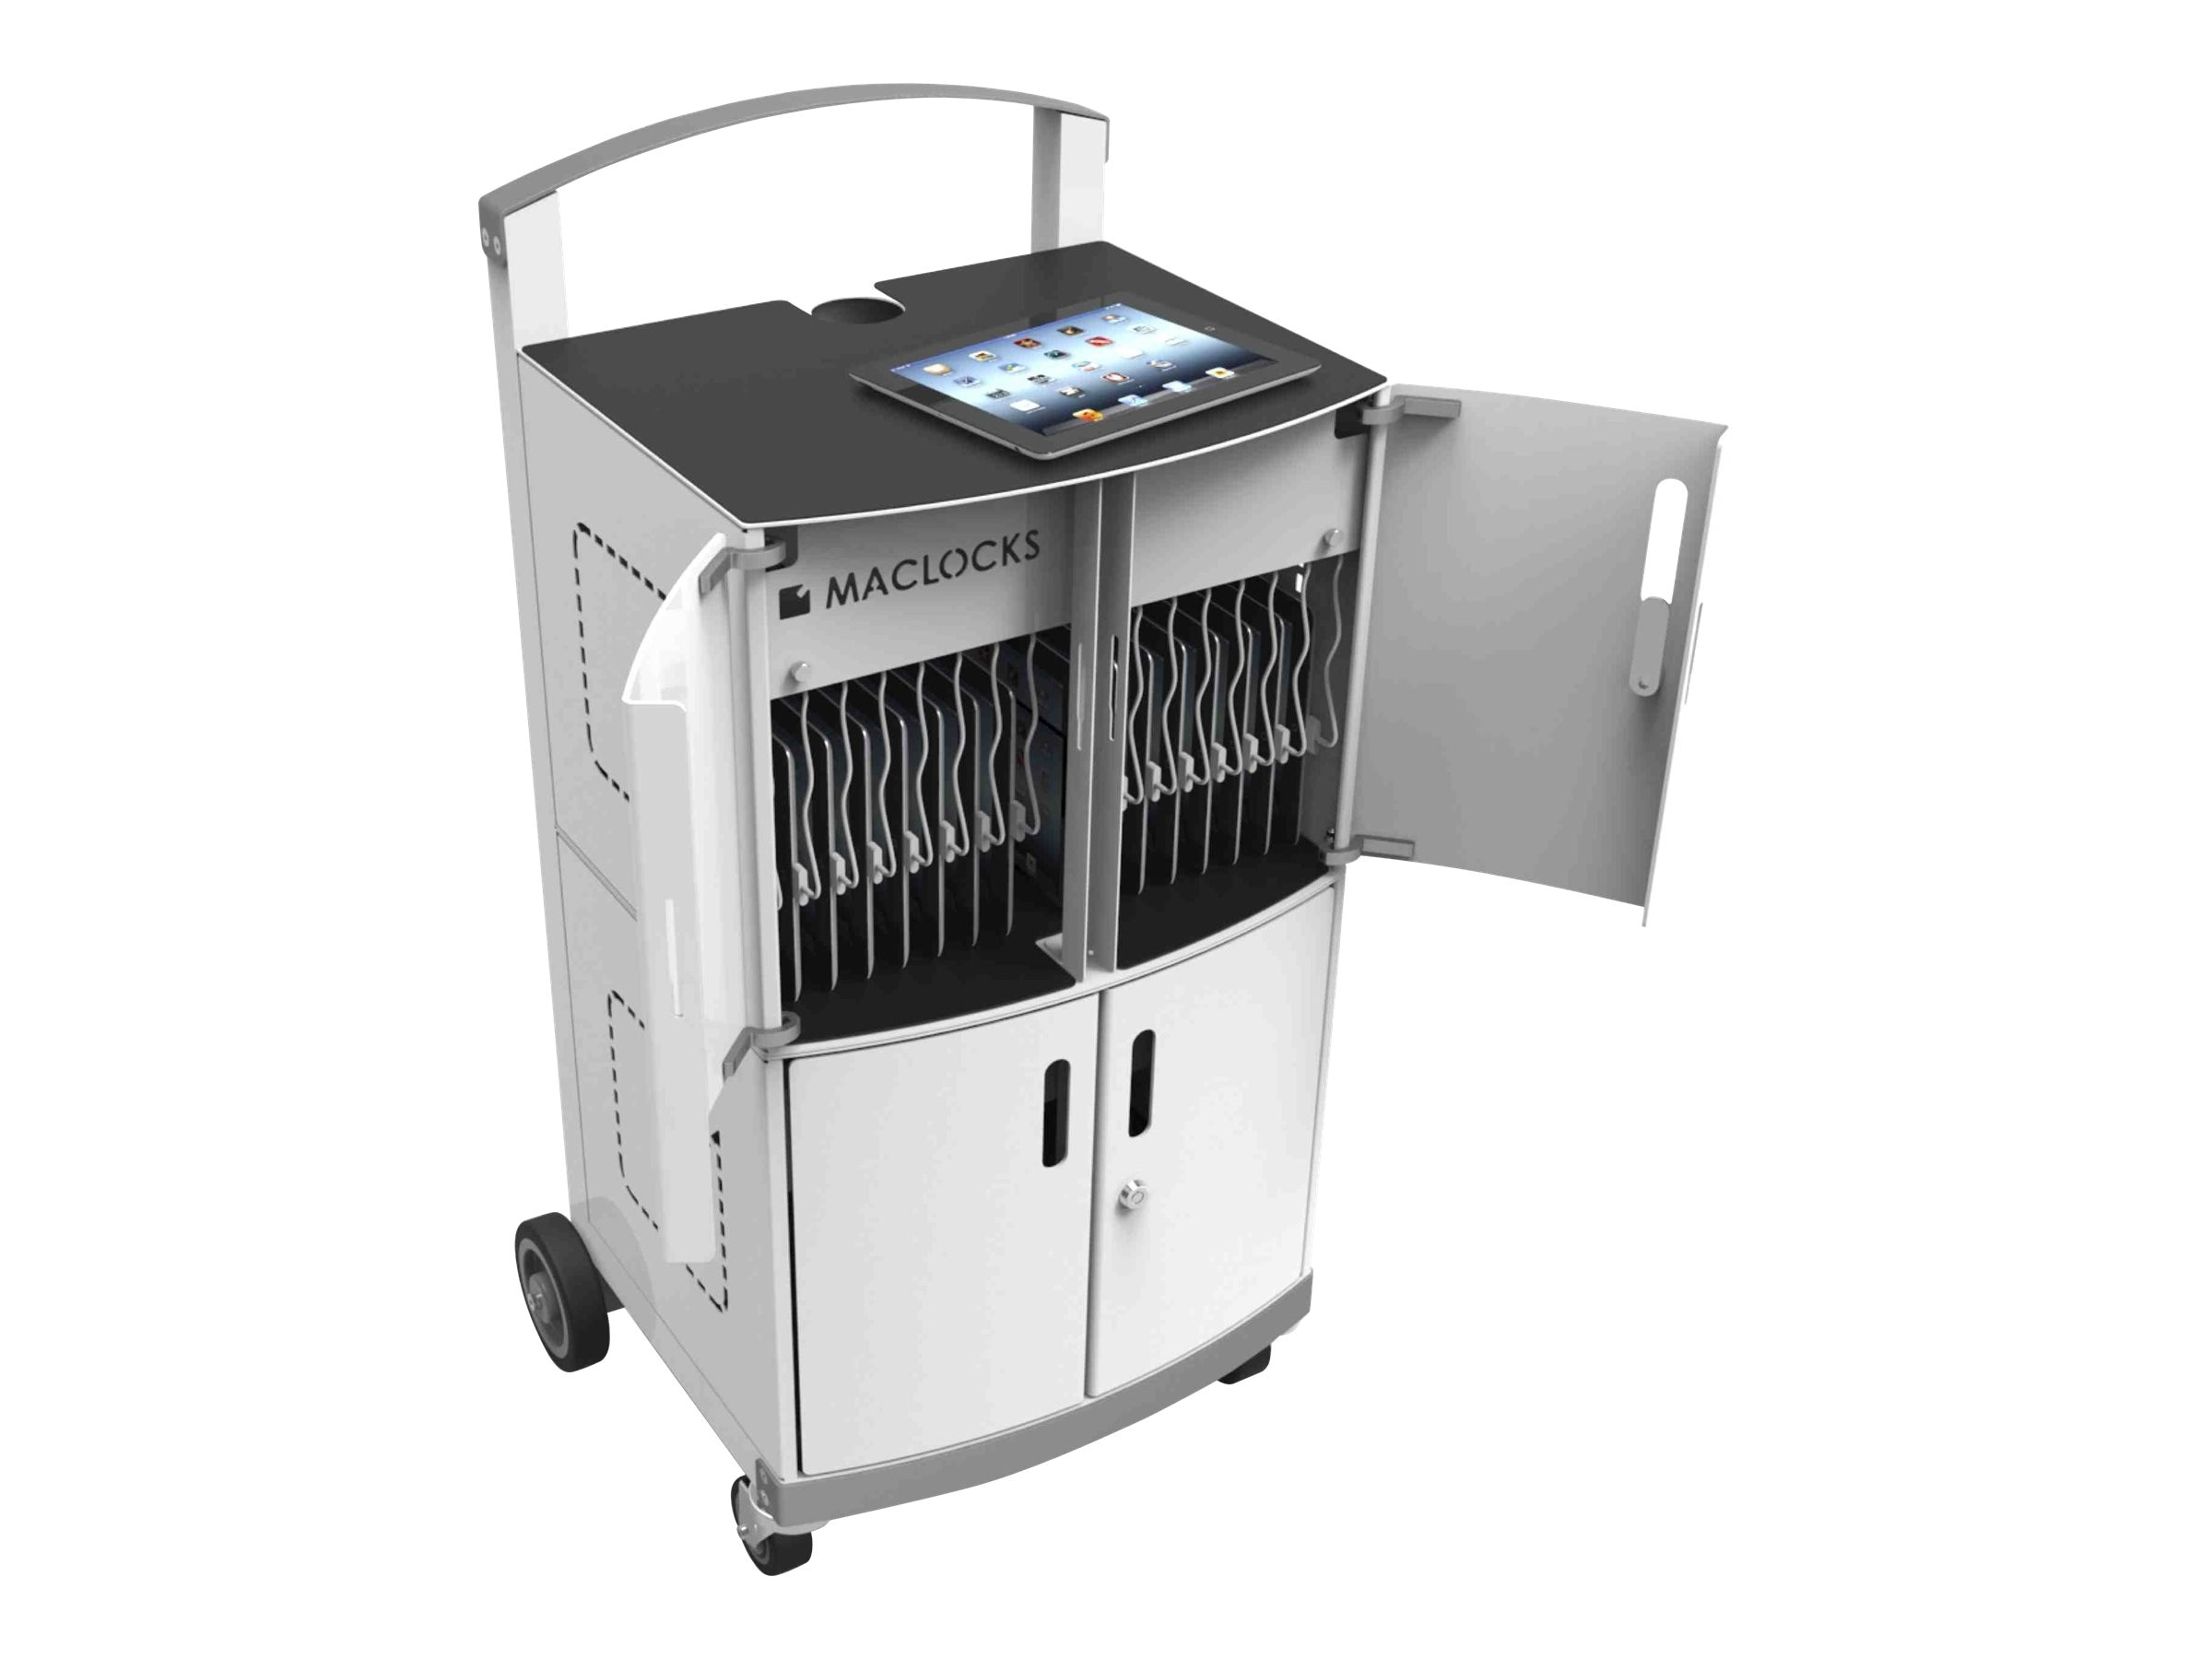 Maclocks 32-Unit Charging Cart for Netbooks Tablets up to 13, CL-DUO, 31260577, Computer Carts